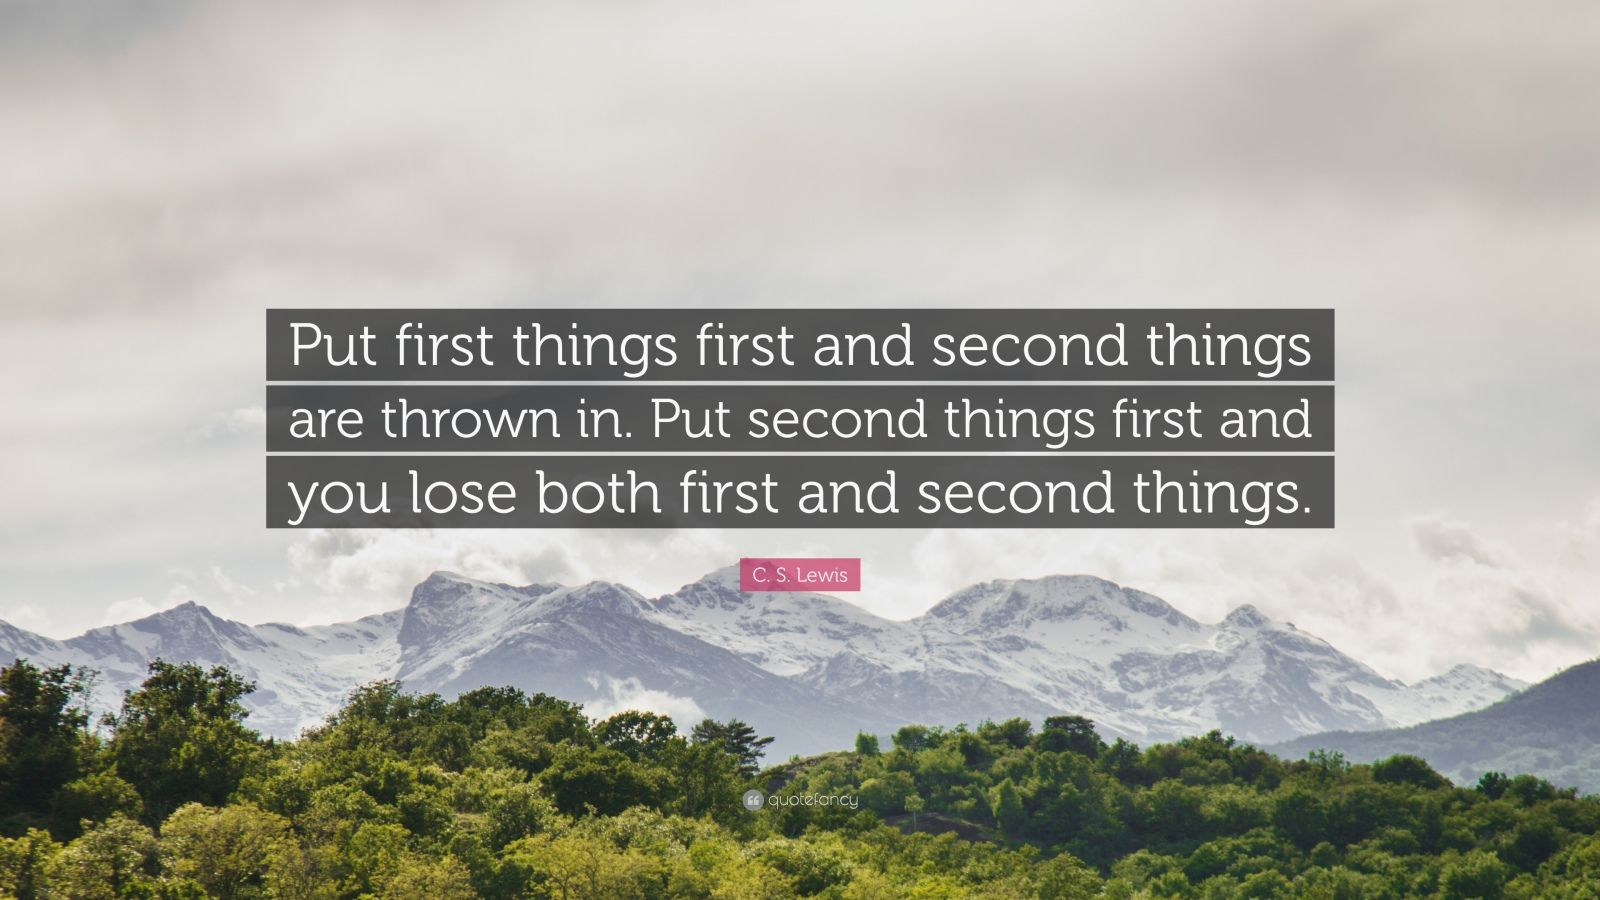 """C. S. Lewis Quote: """"Put first things first and second things are thrown in. Put second things first and you lose both first and second things."""""""